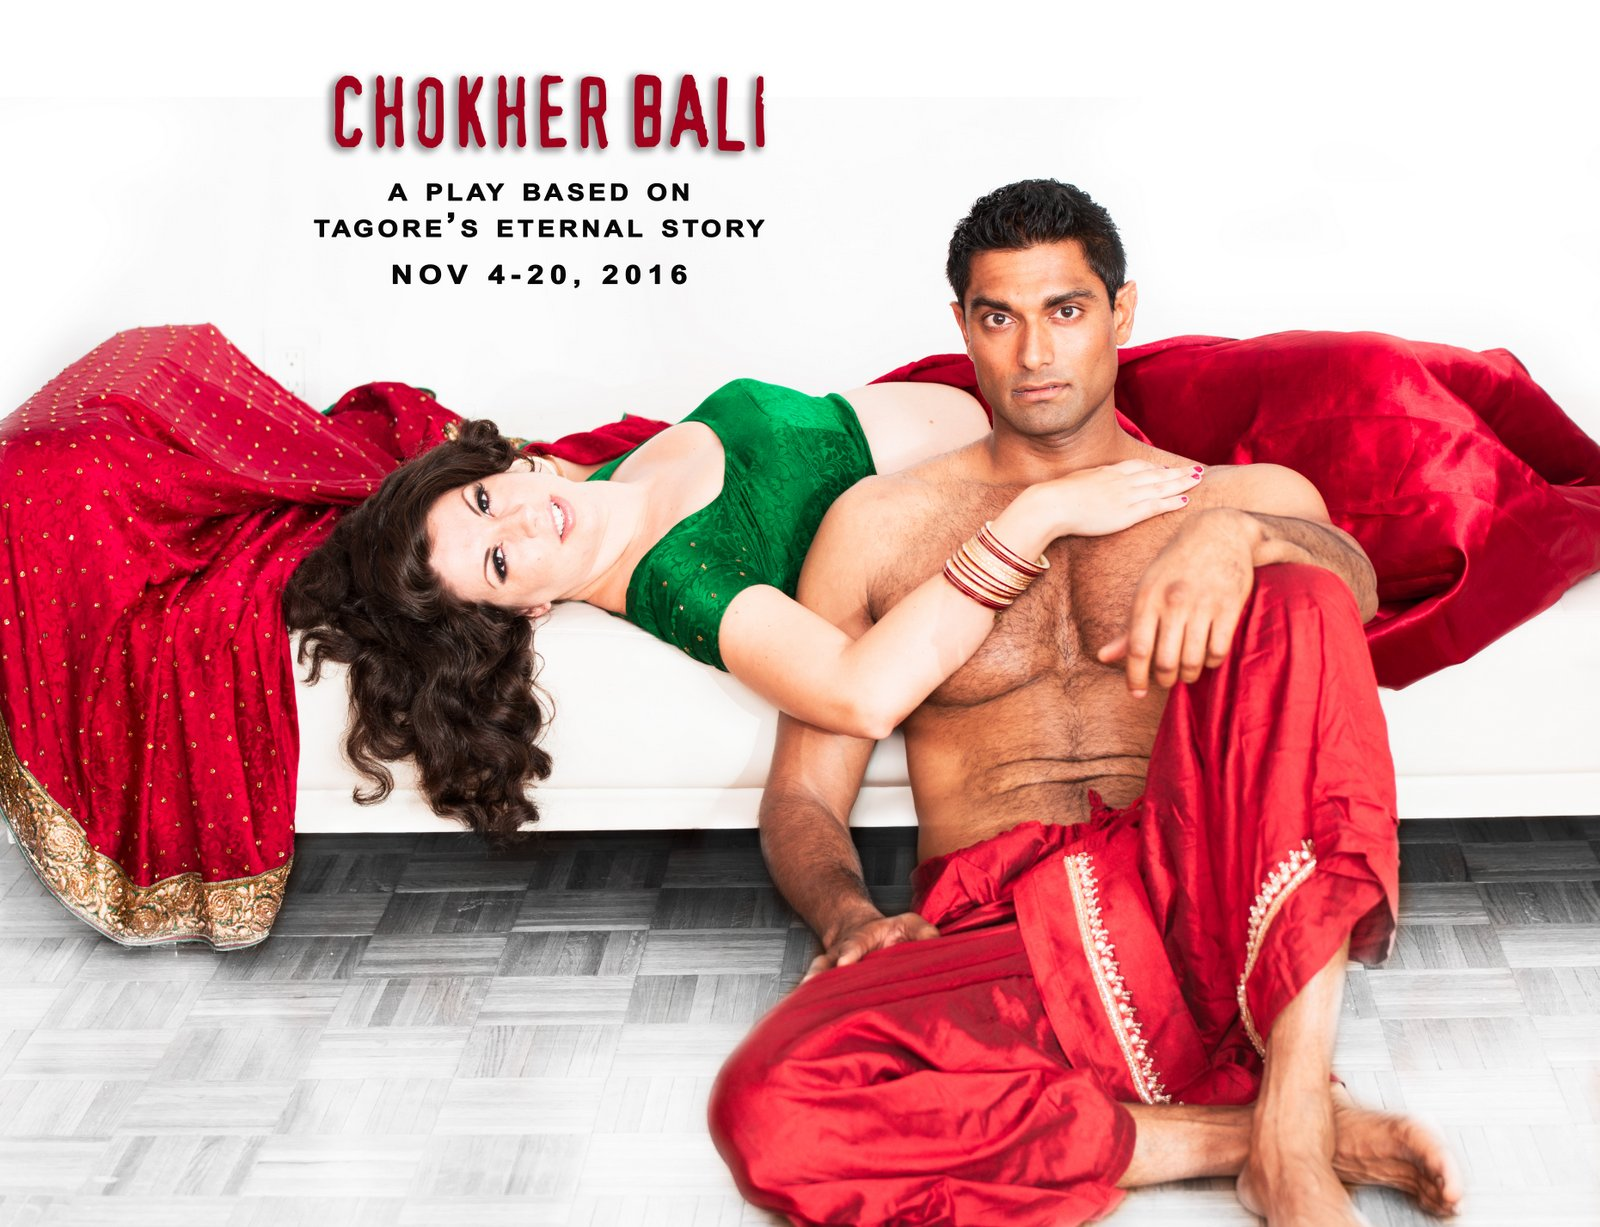 Devdas & Chokher Bali: An Evening of Indian Classics Re-imagined